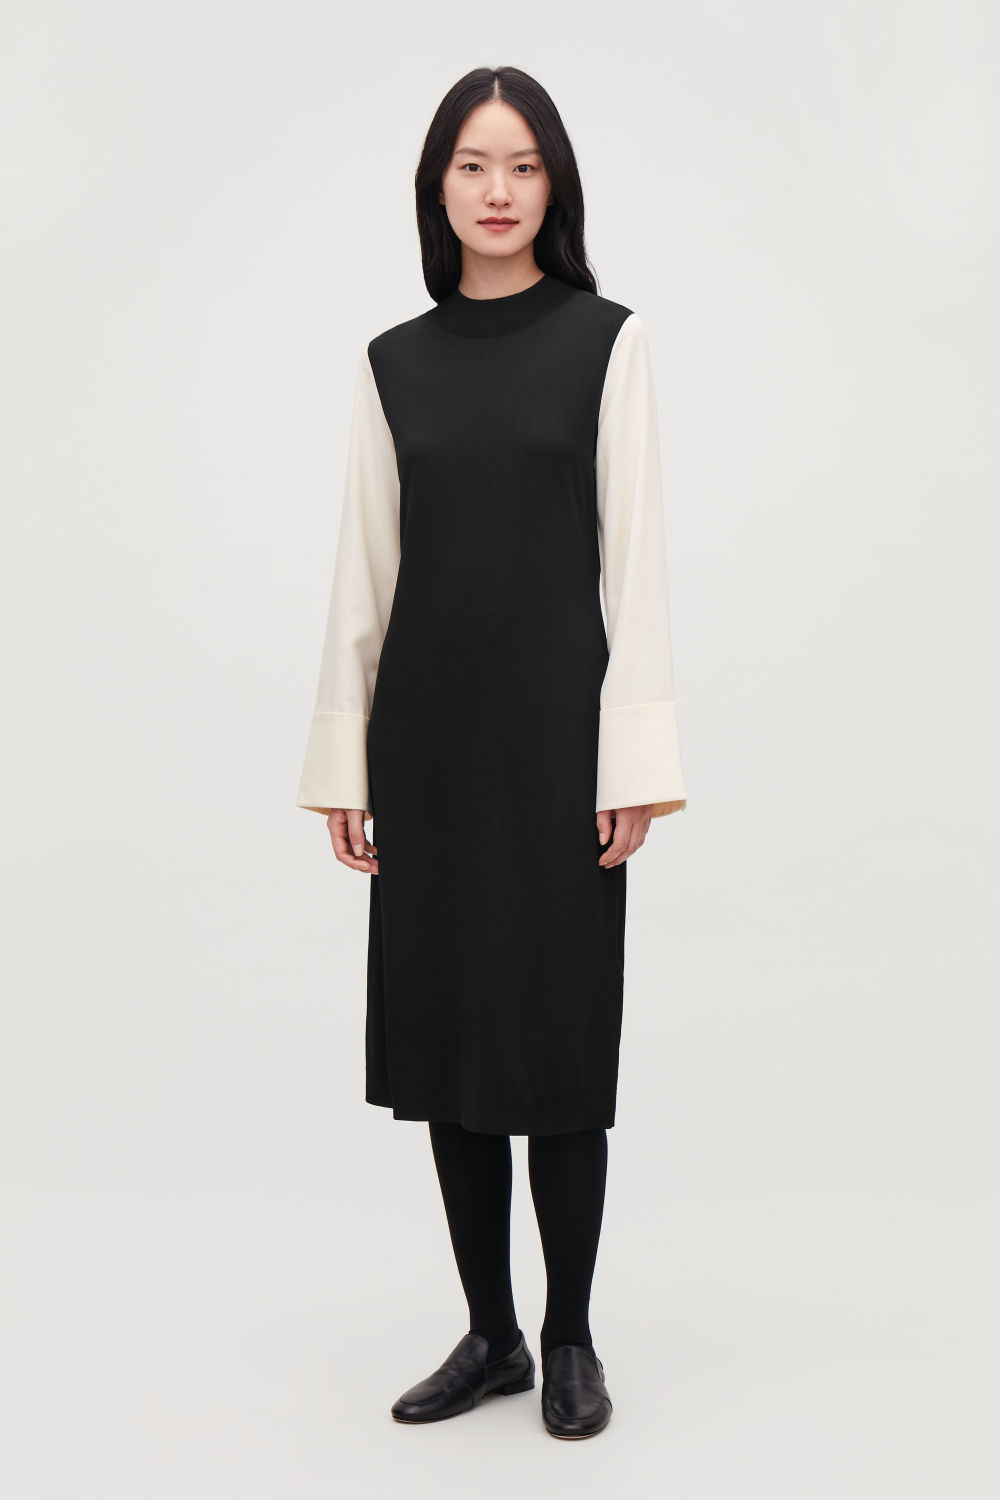 SILK-SLEEVED KNIT DRESS